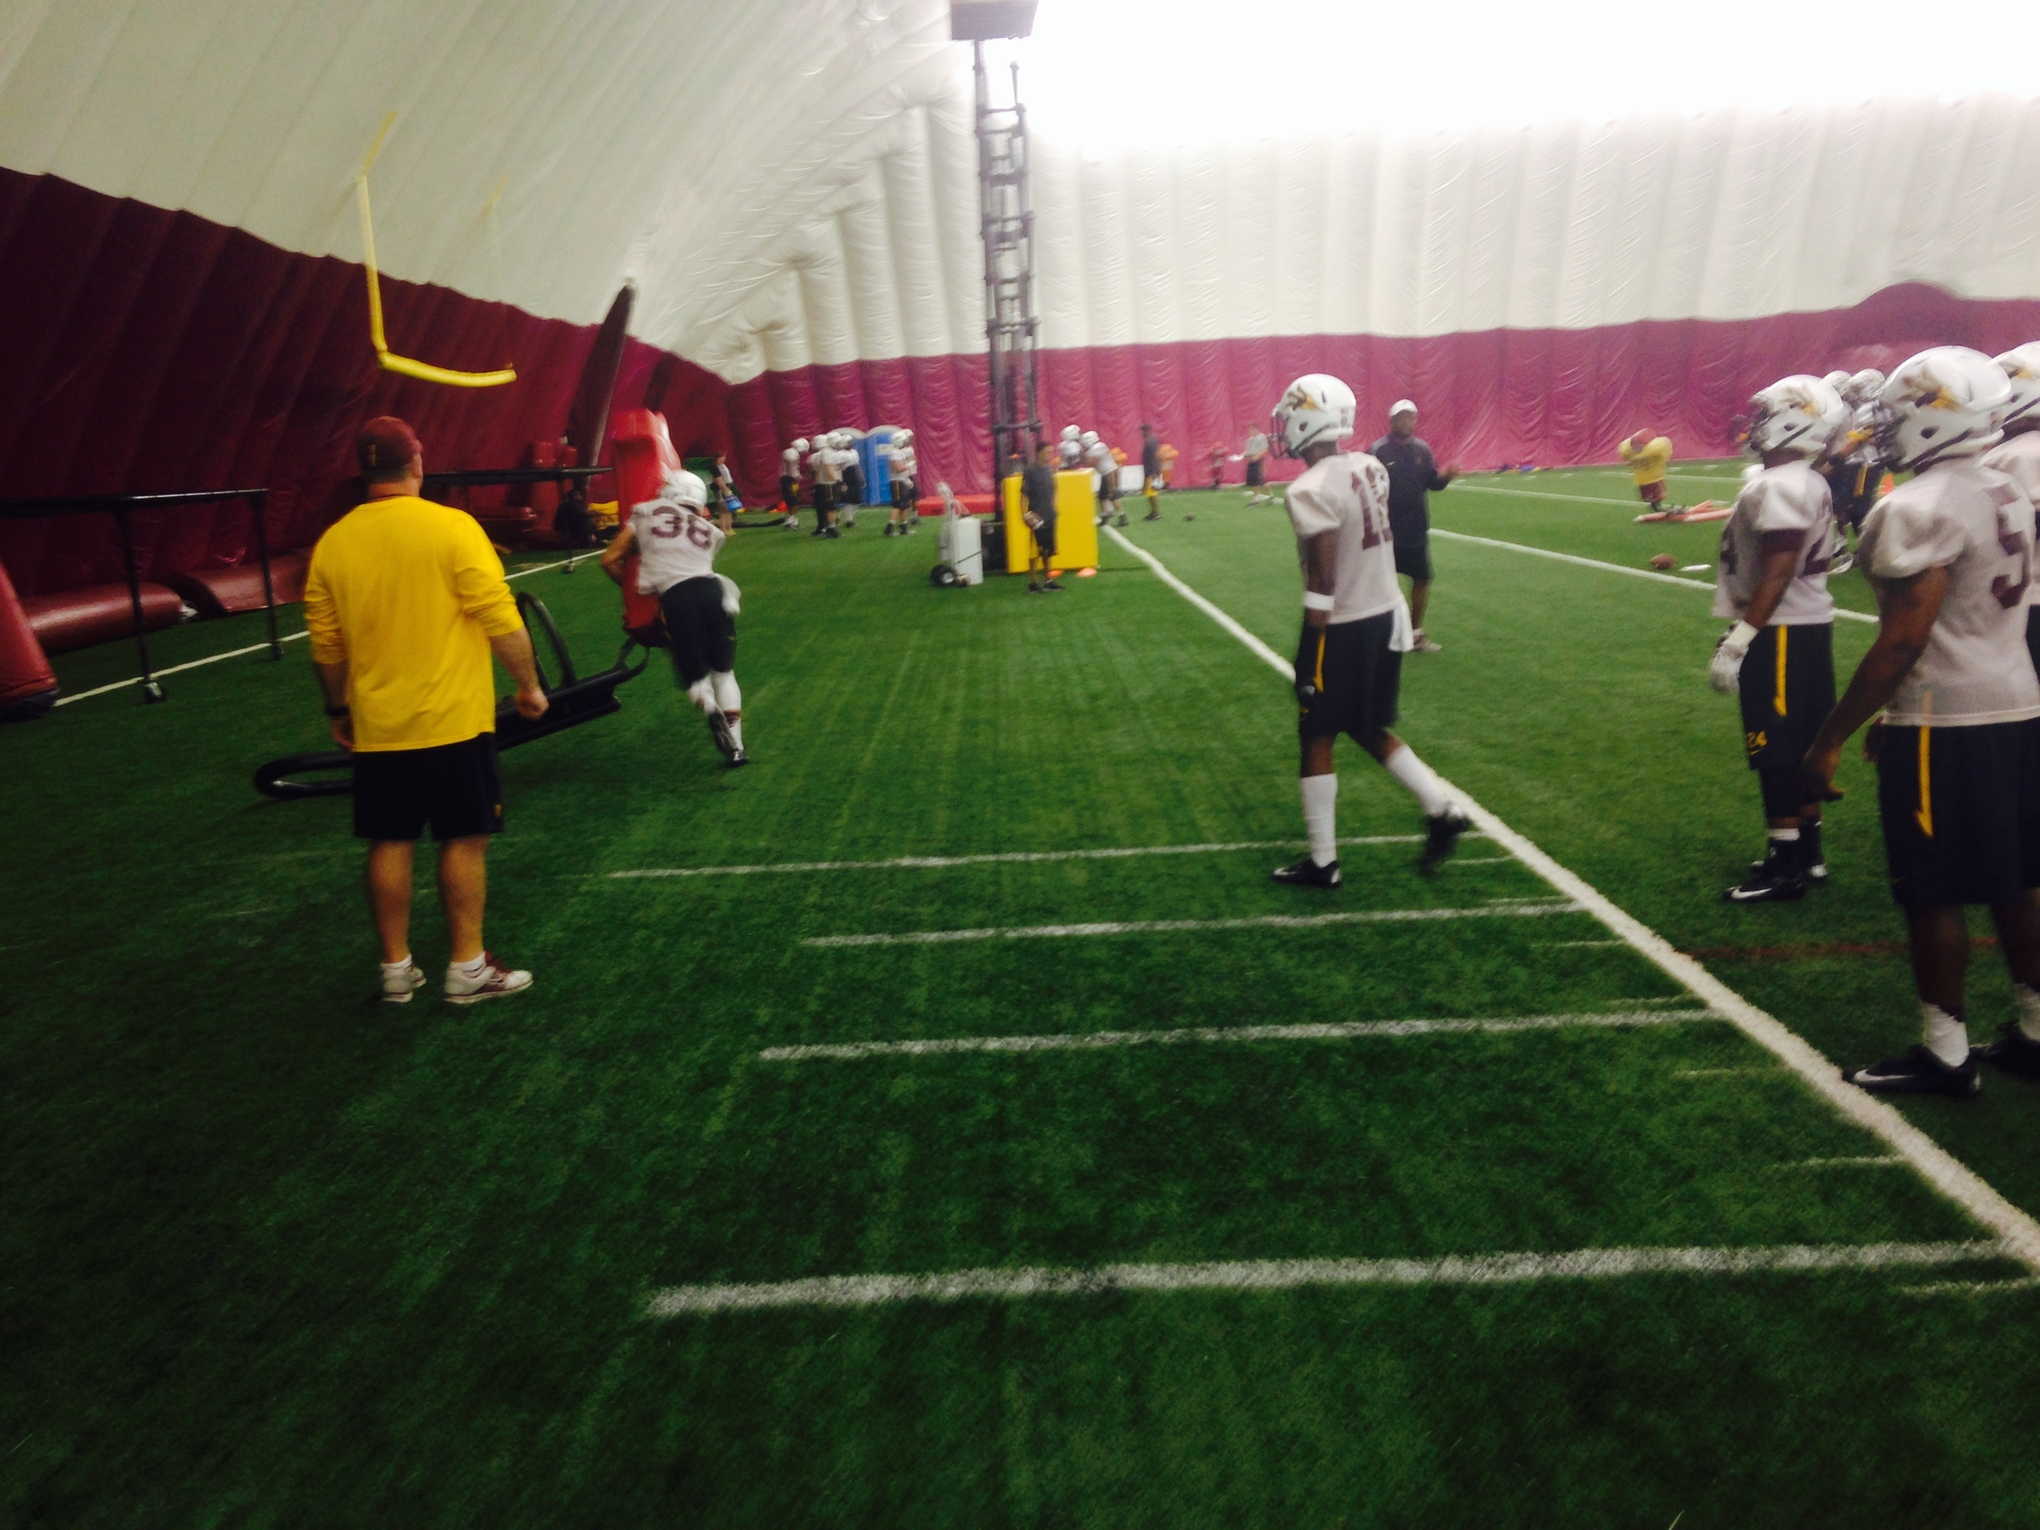 Jordan Simone hits a blocking sled as co-defensive coordinator Chris Ball looks on during practice on Aug. 7, 2014